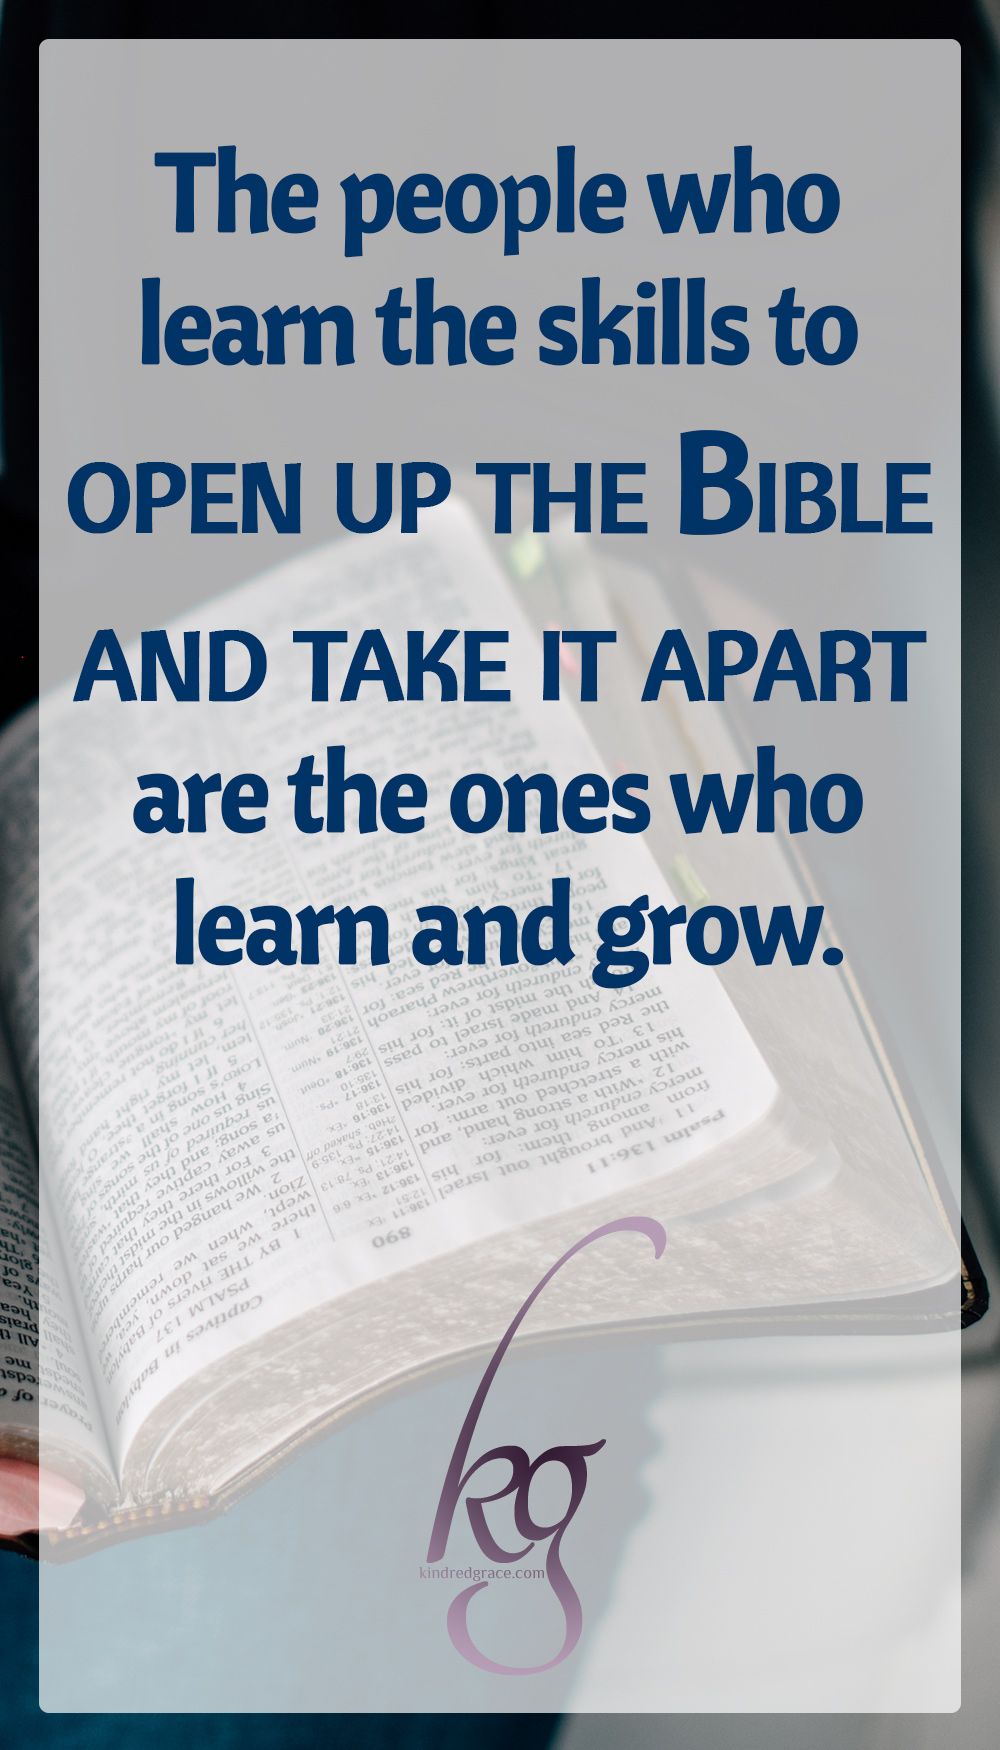 The people who learn the skills to open up the Bible and take it apart are the ones who learn and grow. They are the ones who understand the words on the page and start to know God and feel comfortable in relationship with him.